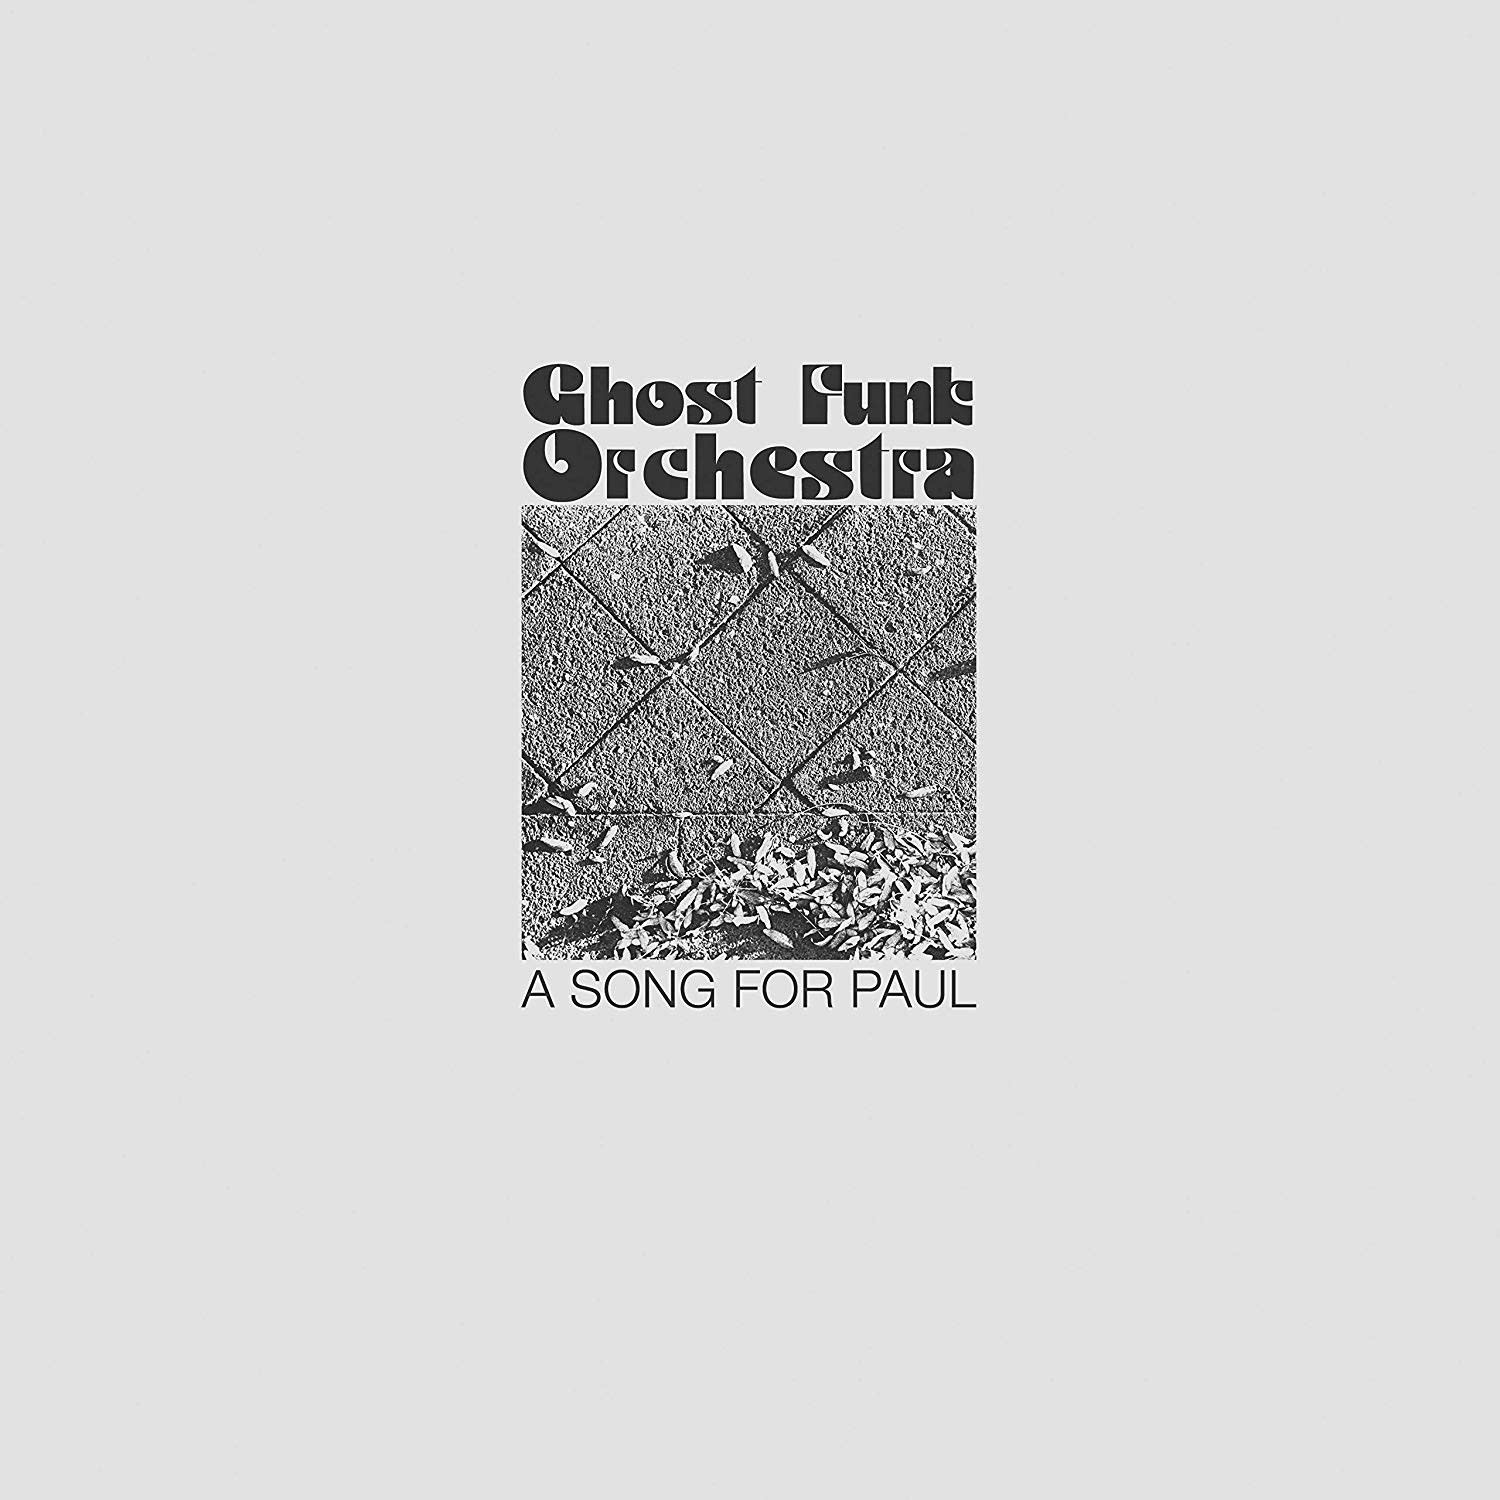 Ghost Funk Orchestra - A Song For Paul